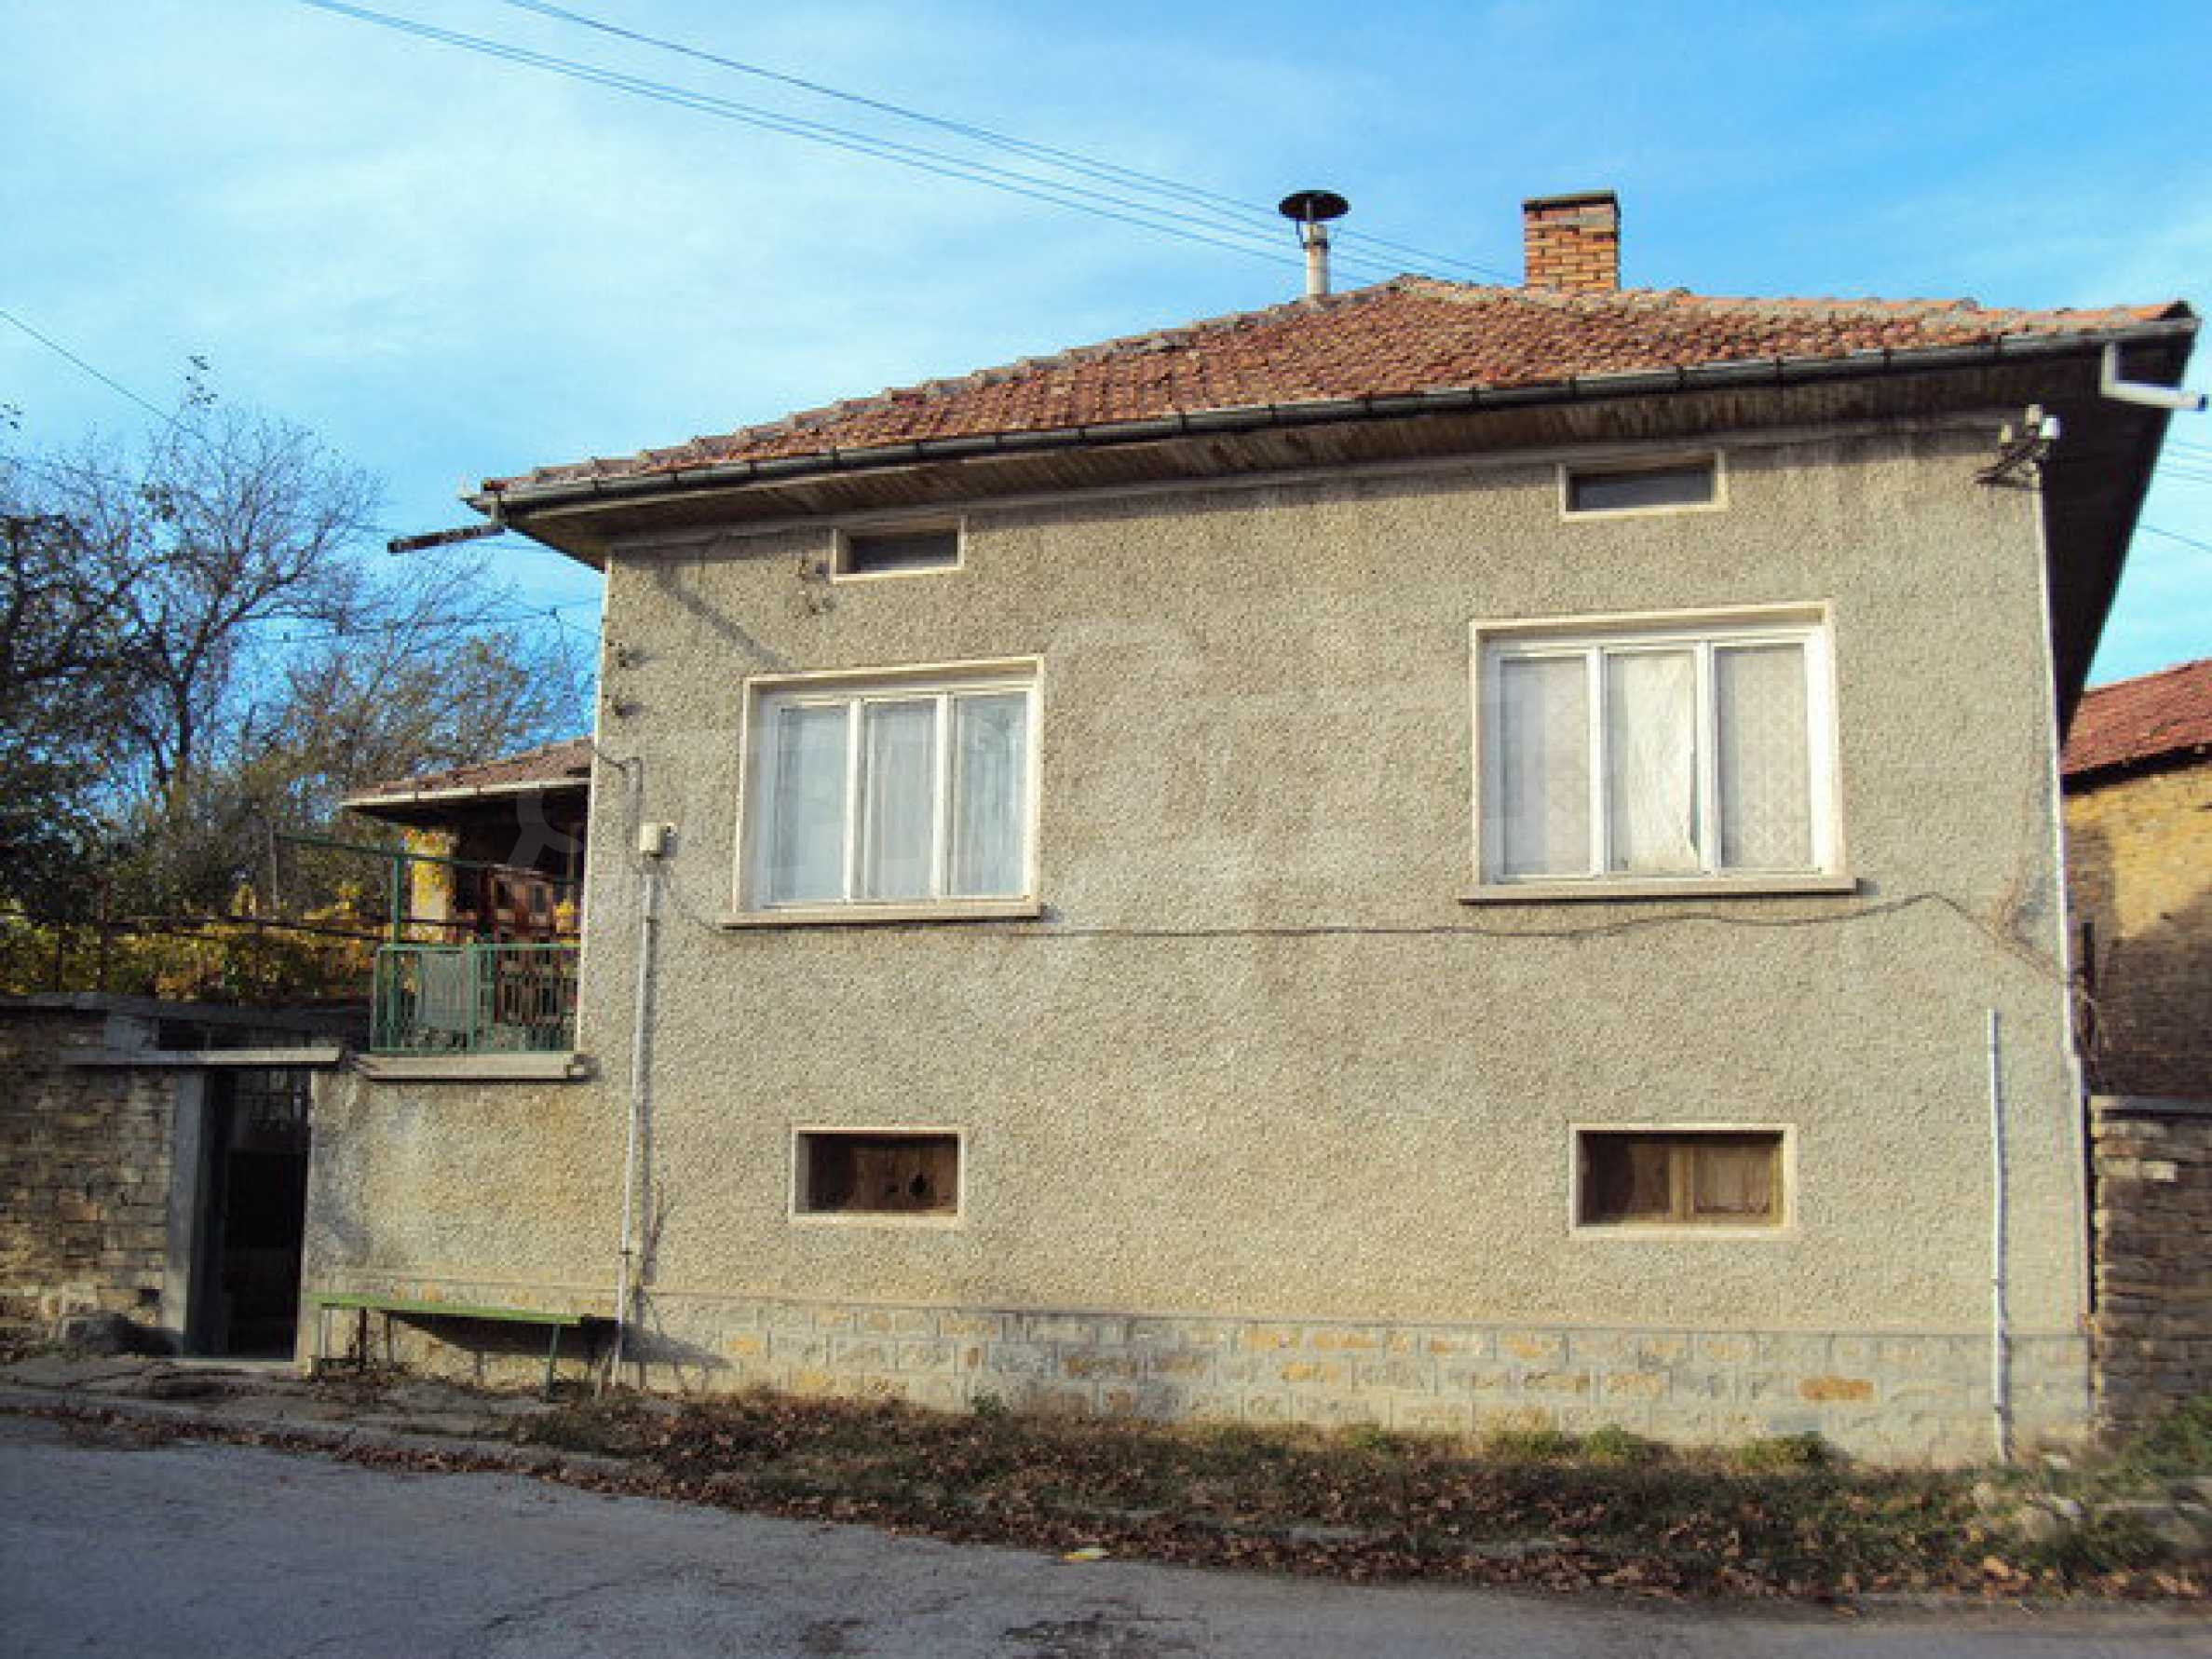 Two-storey house in a village 40 km. from Veliko Tarnovo 1